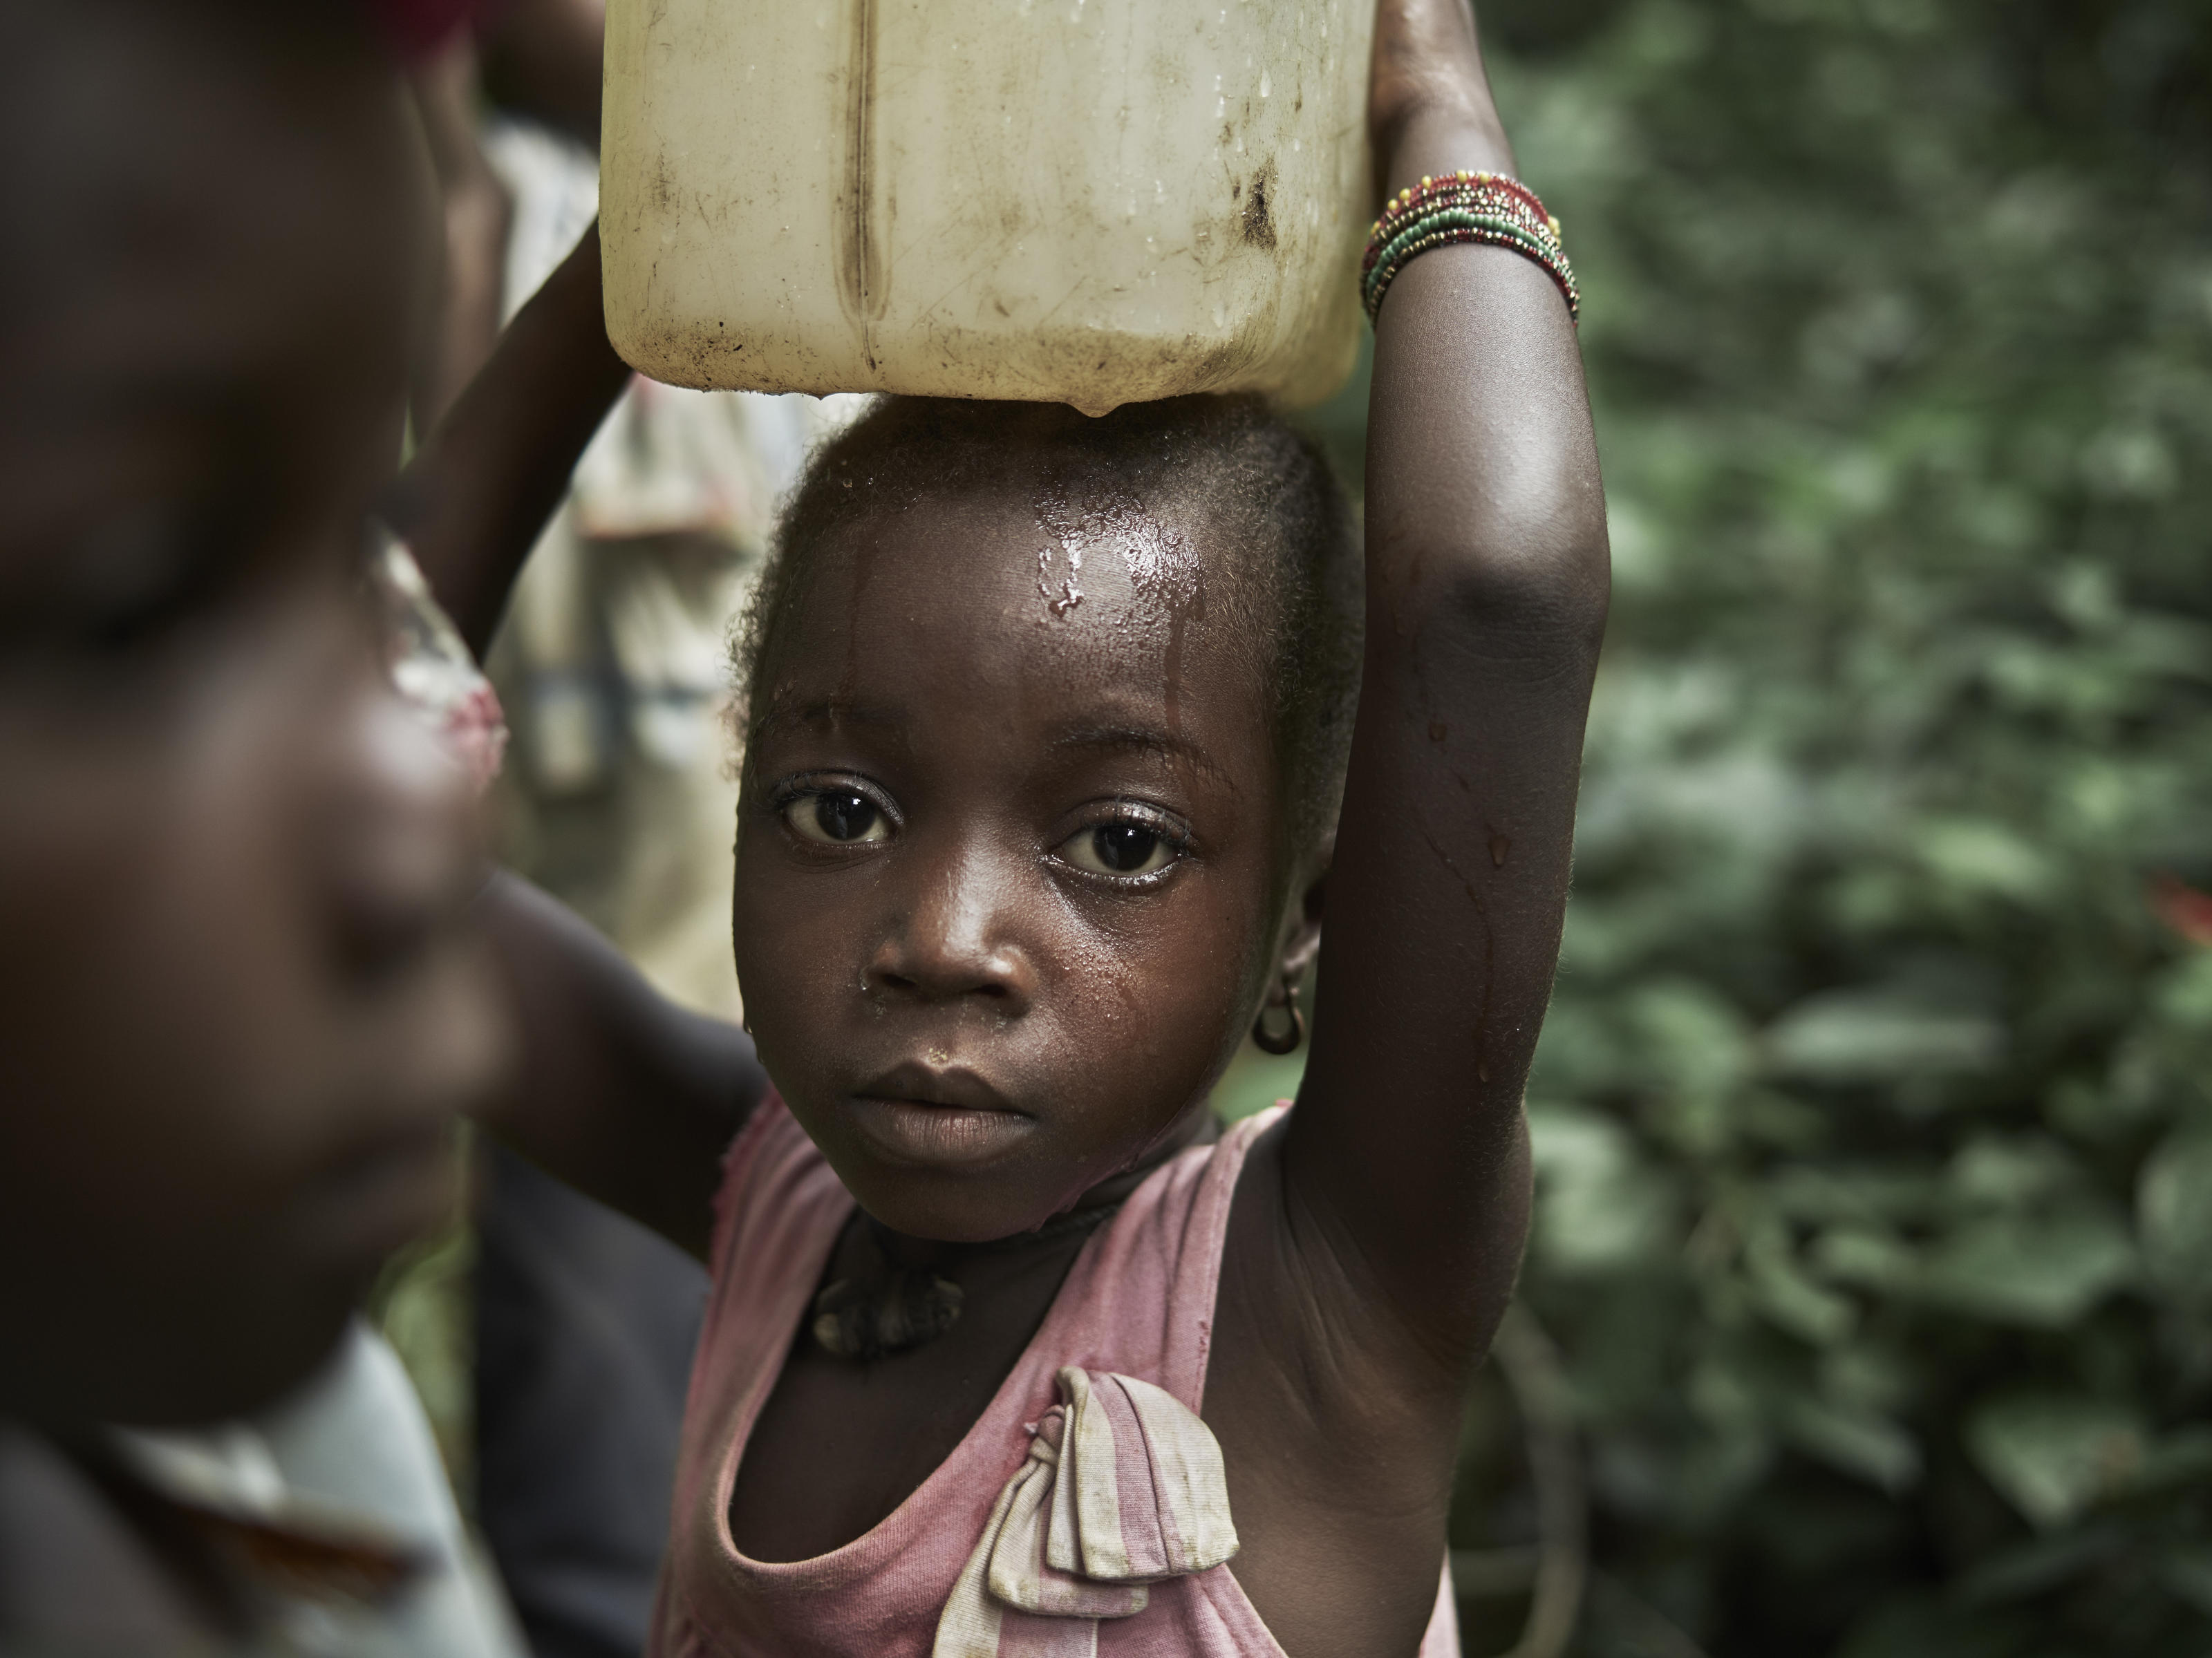 Nancy Smart, 6, carrying a container, called a 'gallon' of dirty water collected from a natural spring - the previous water source for the community of Tombohuaun. The gallon is put on her head by her mother Fatu, whom she goes with to collect water,  ...